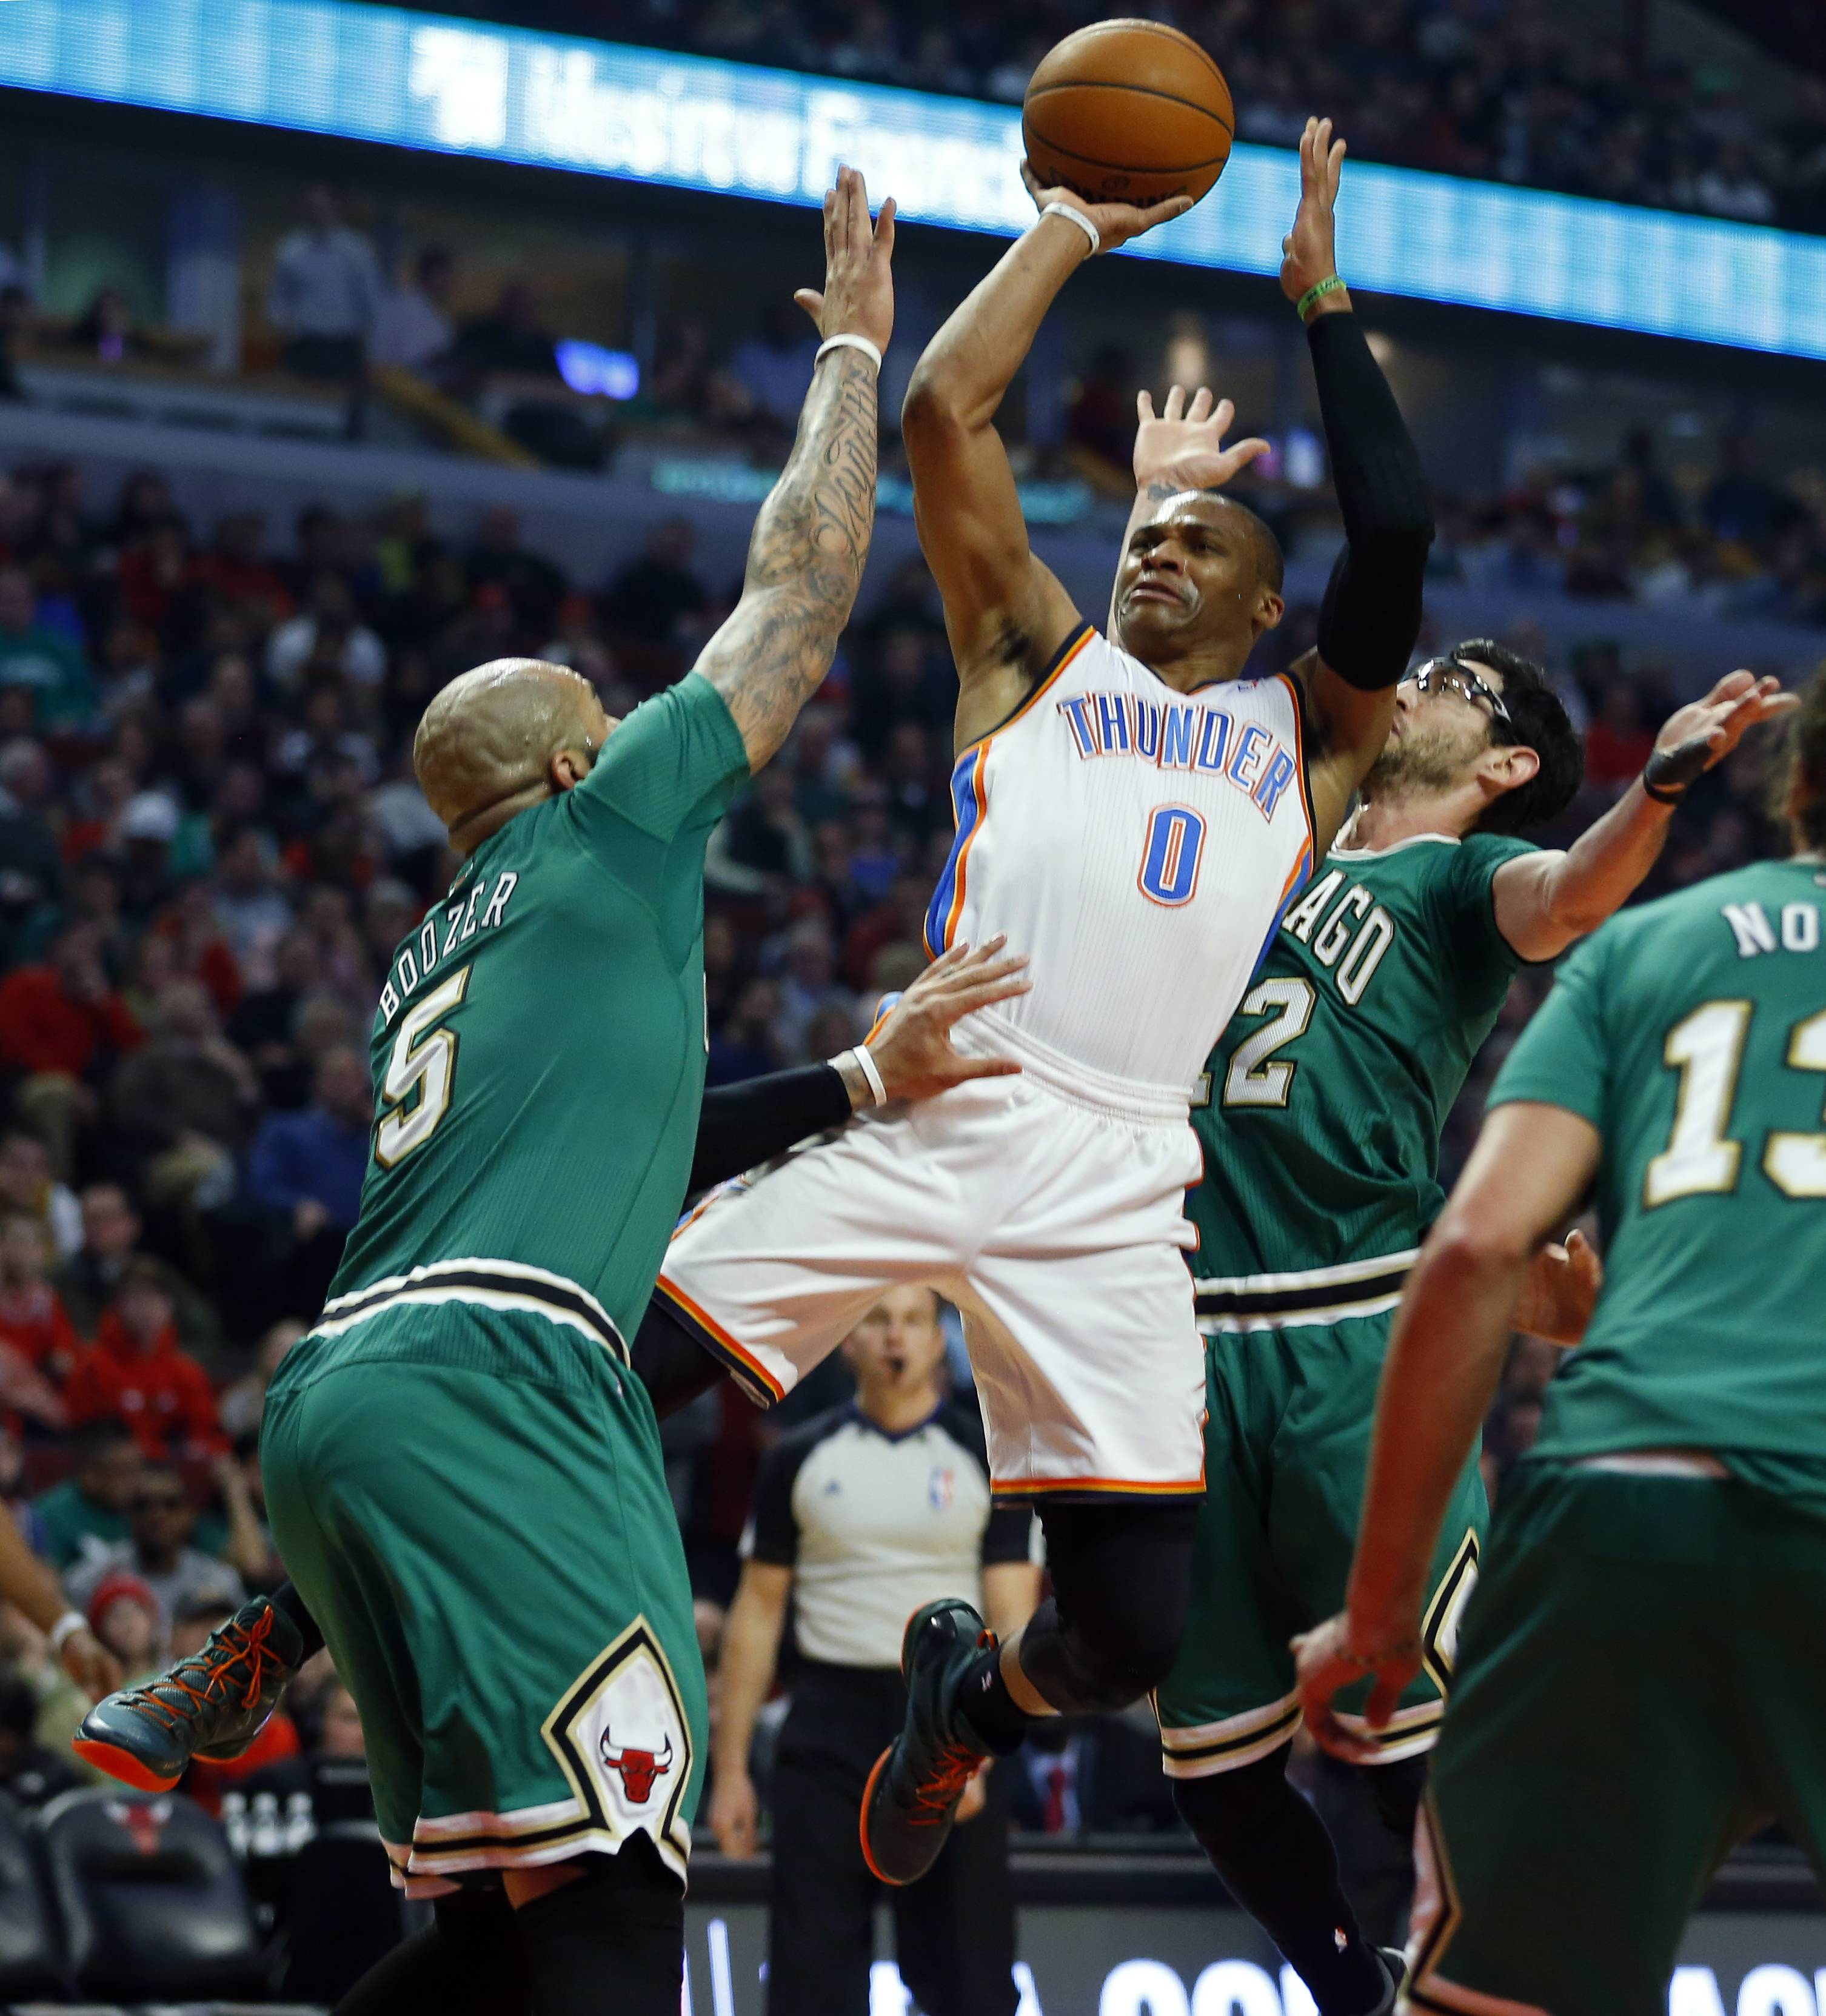 Oklahoma City guard Russell Westbrook shoots over the Bulls' Carlos Boozer and Kirk Hinrich, right, during the first half Monday night.